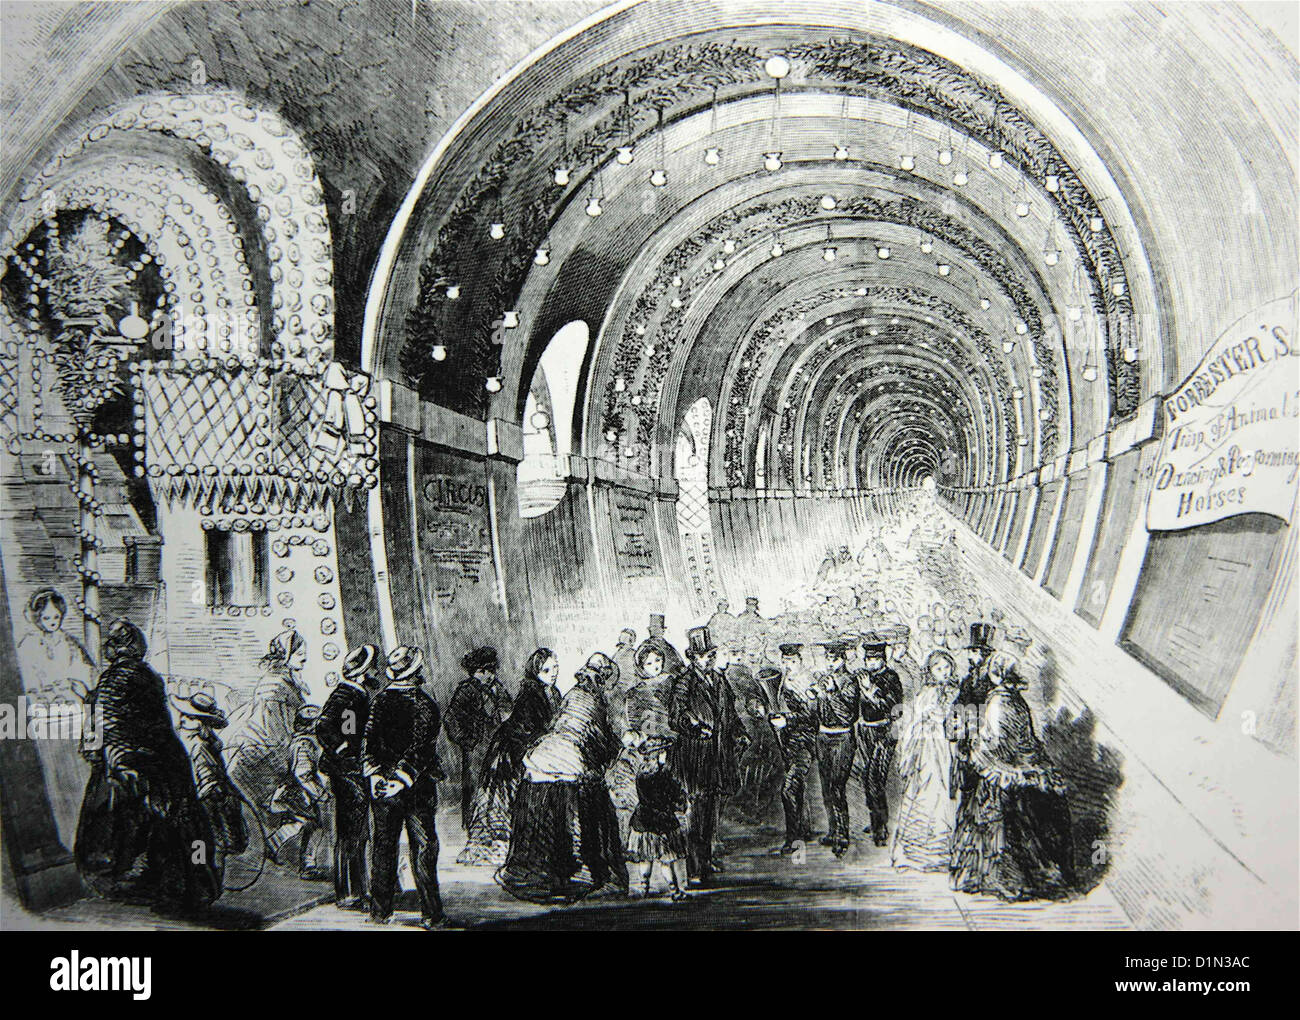 Fair in the Thames Tunnel, London, Britain, UK Stock Photo